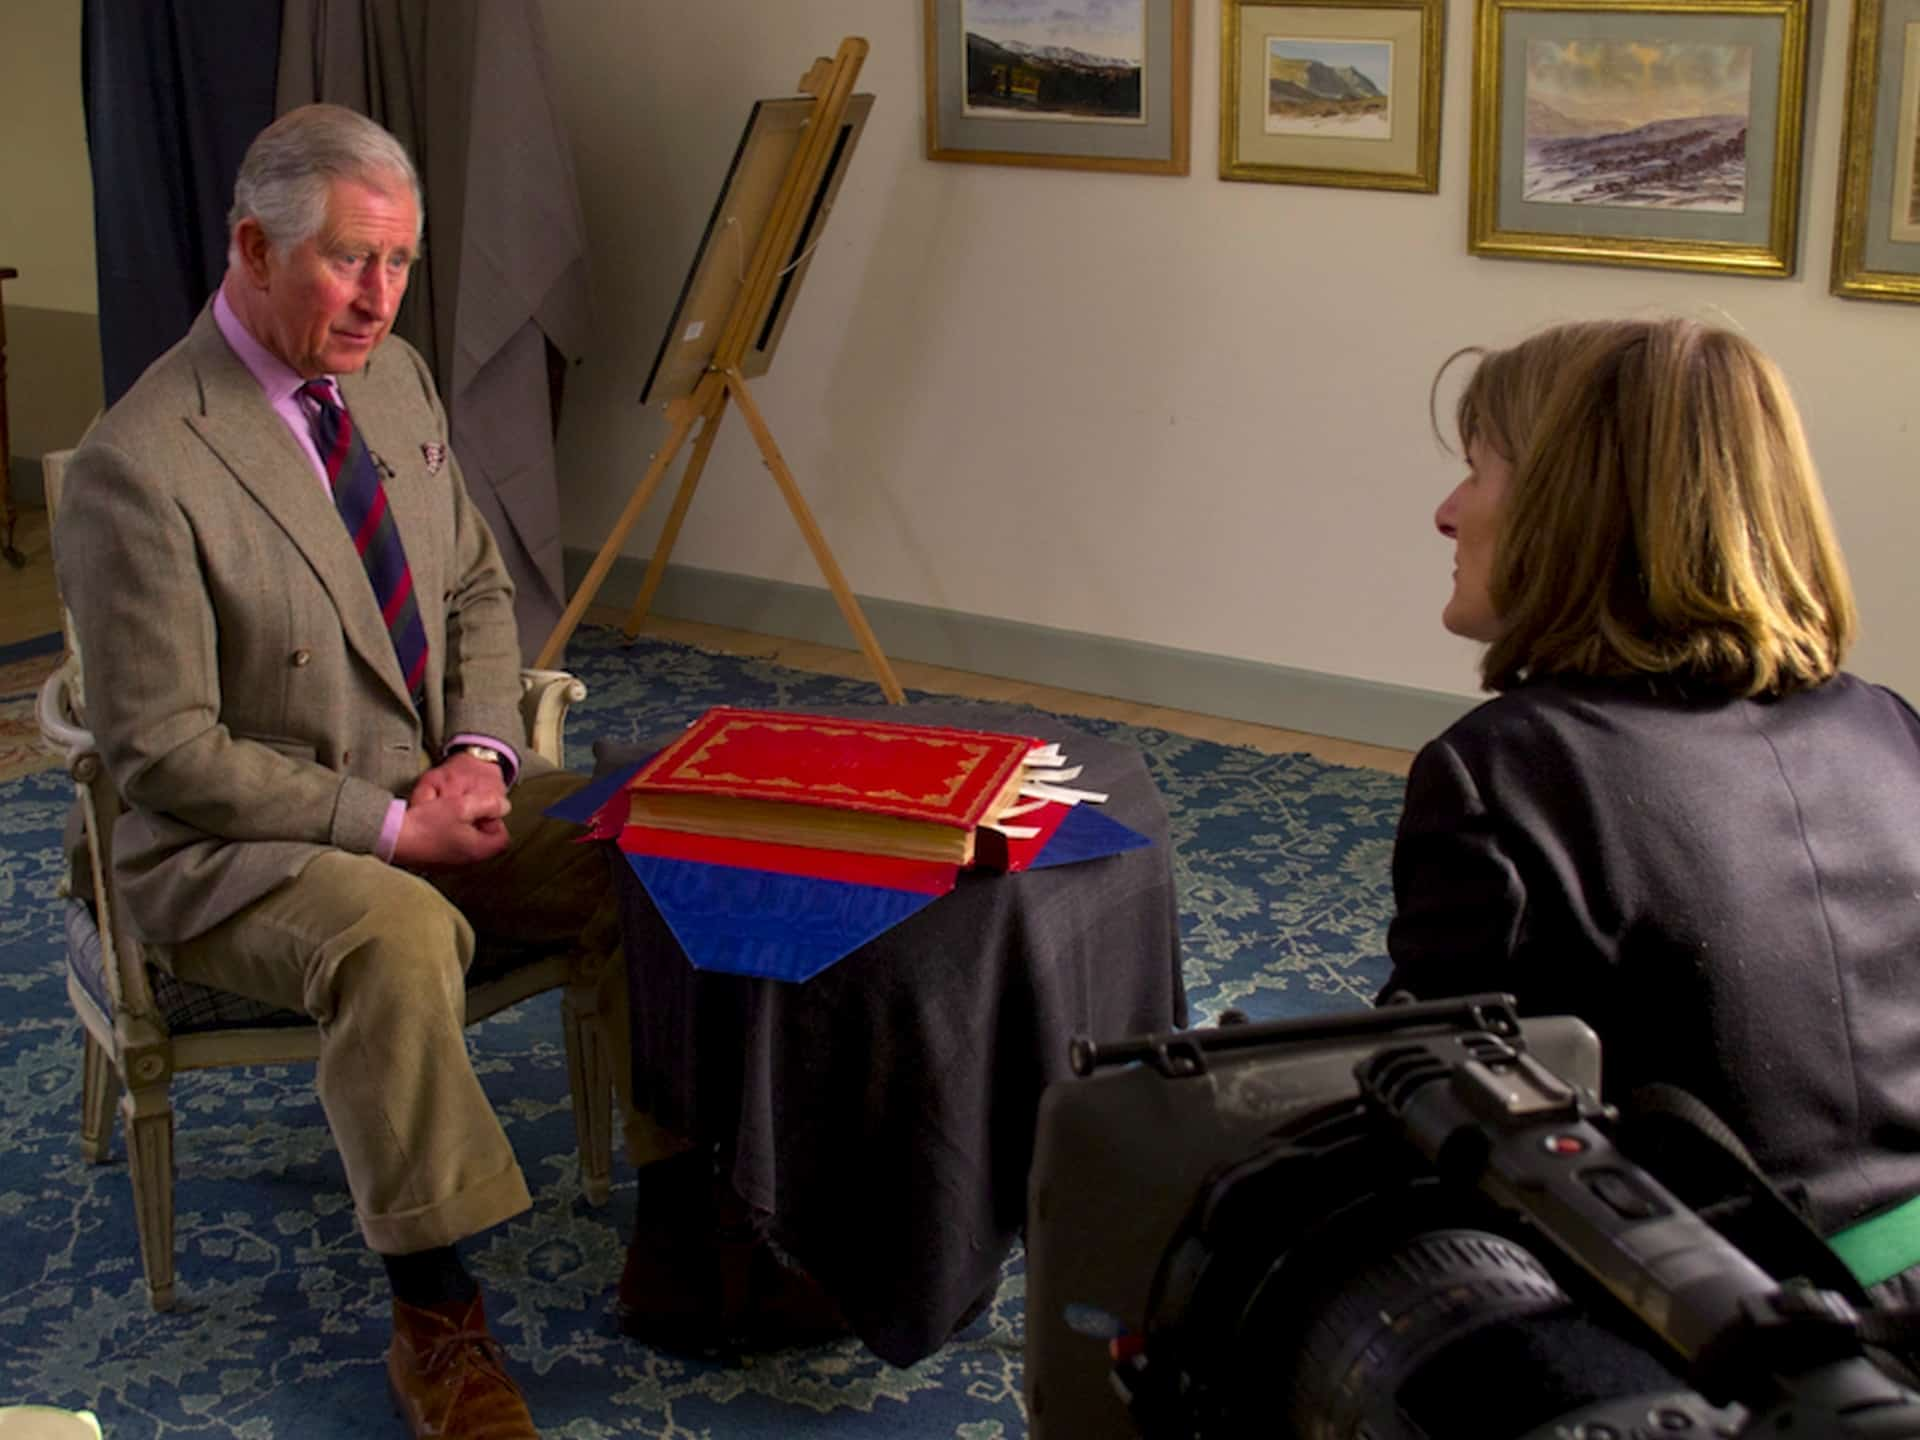 HRH The Prince of Wales with director Margy Kinmonth during the filming of Royal Paintbox